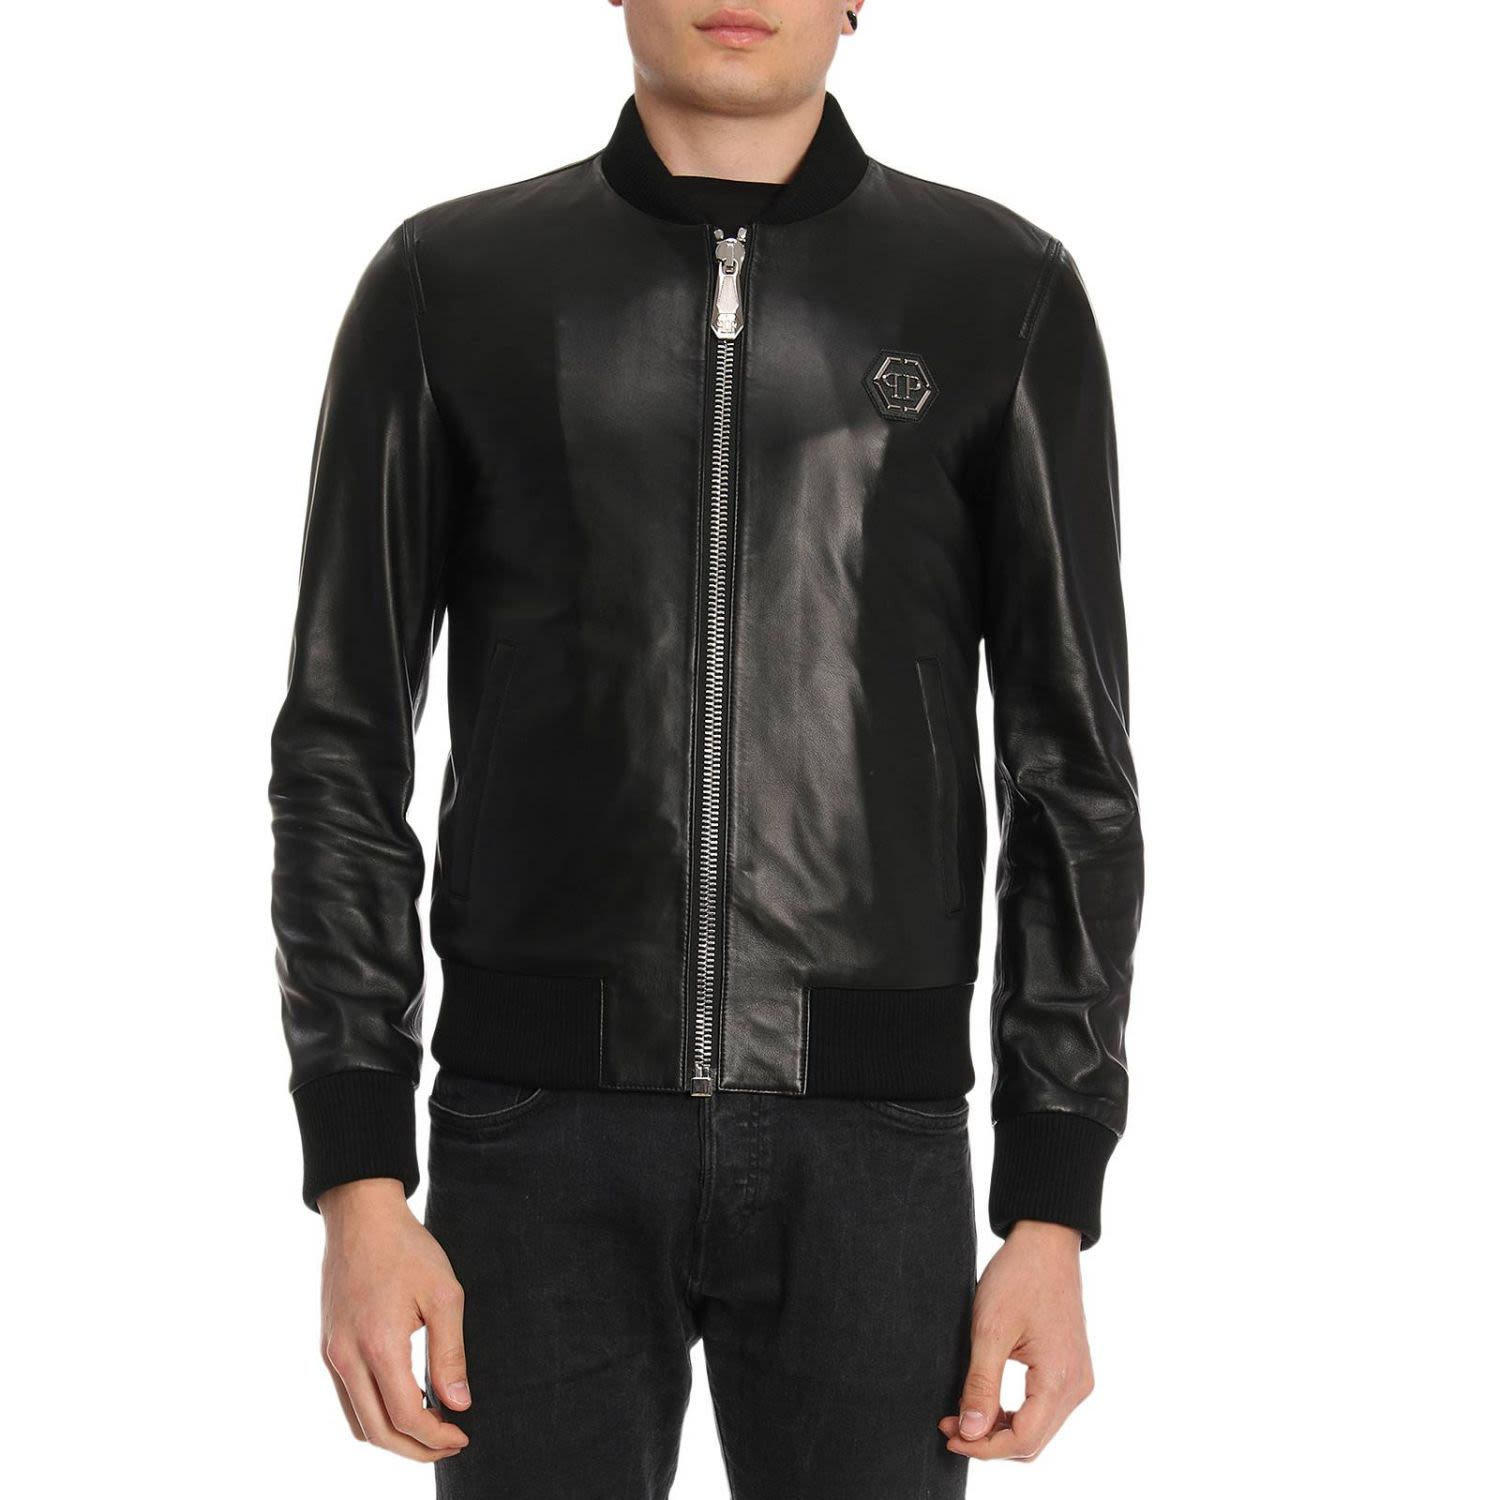 Philipp Plein Jacket Jacket Men Philipp Plein